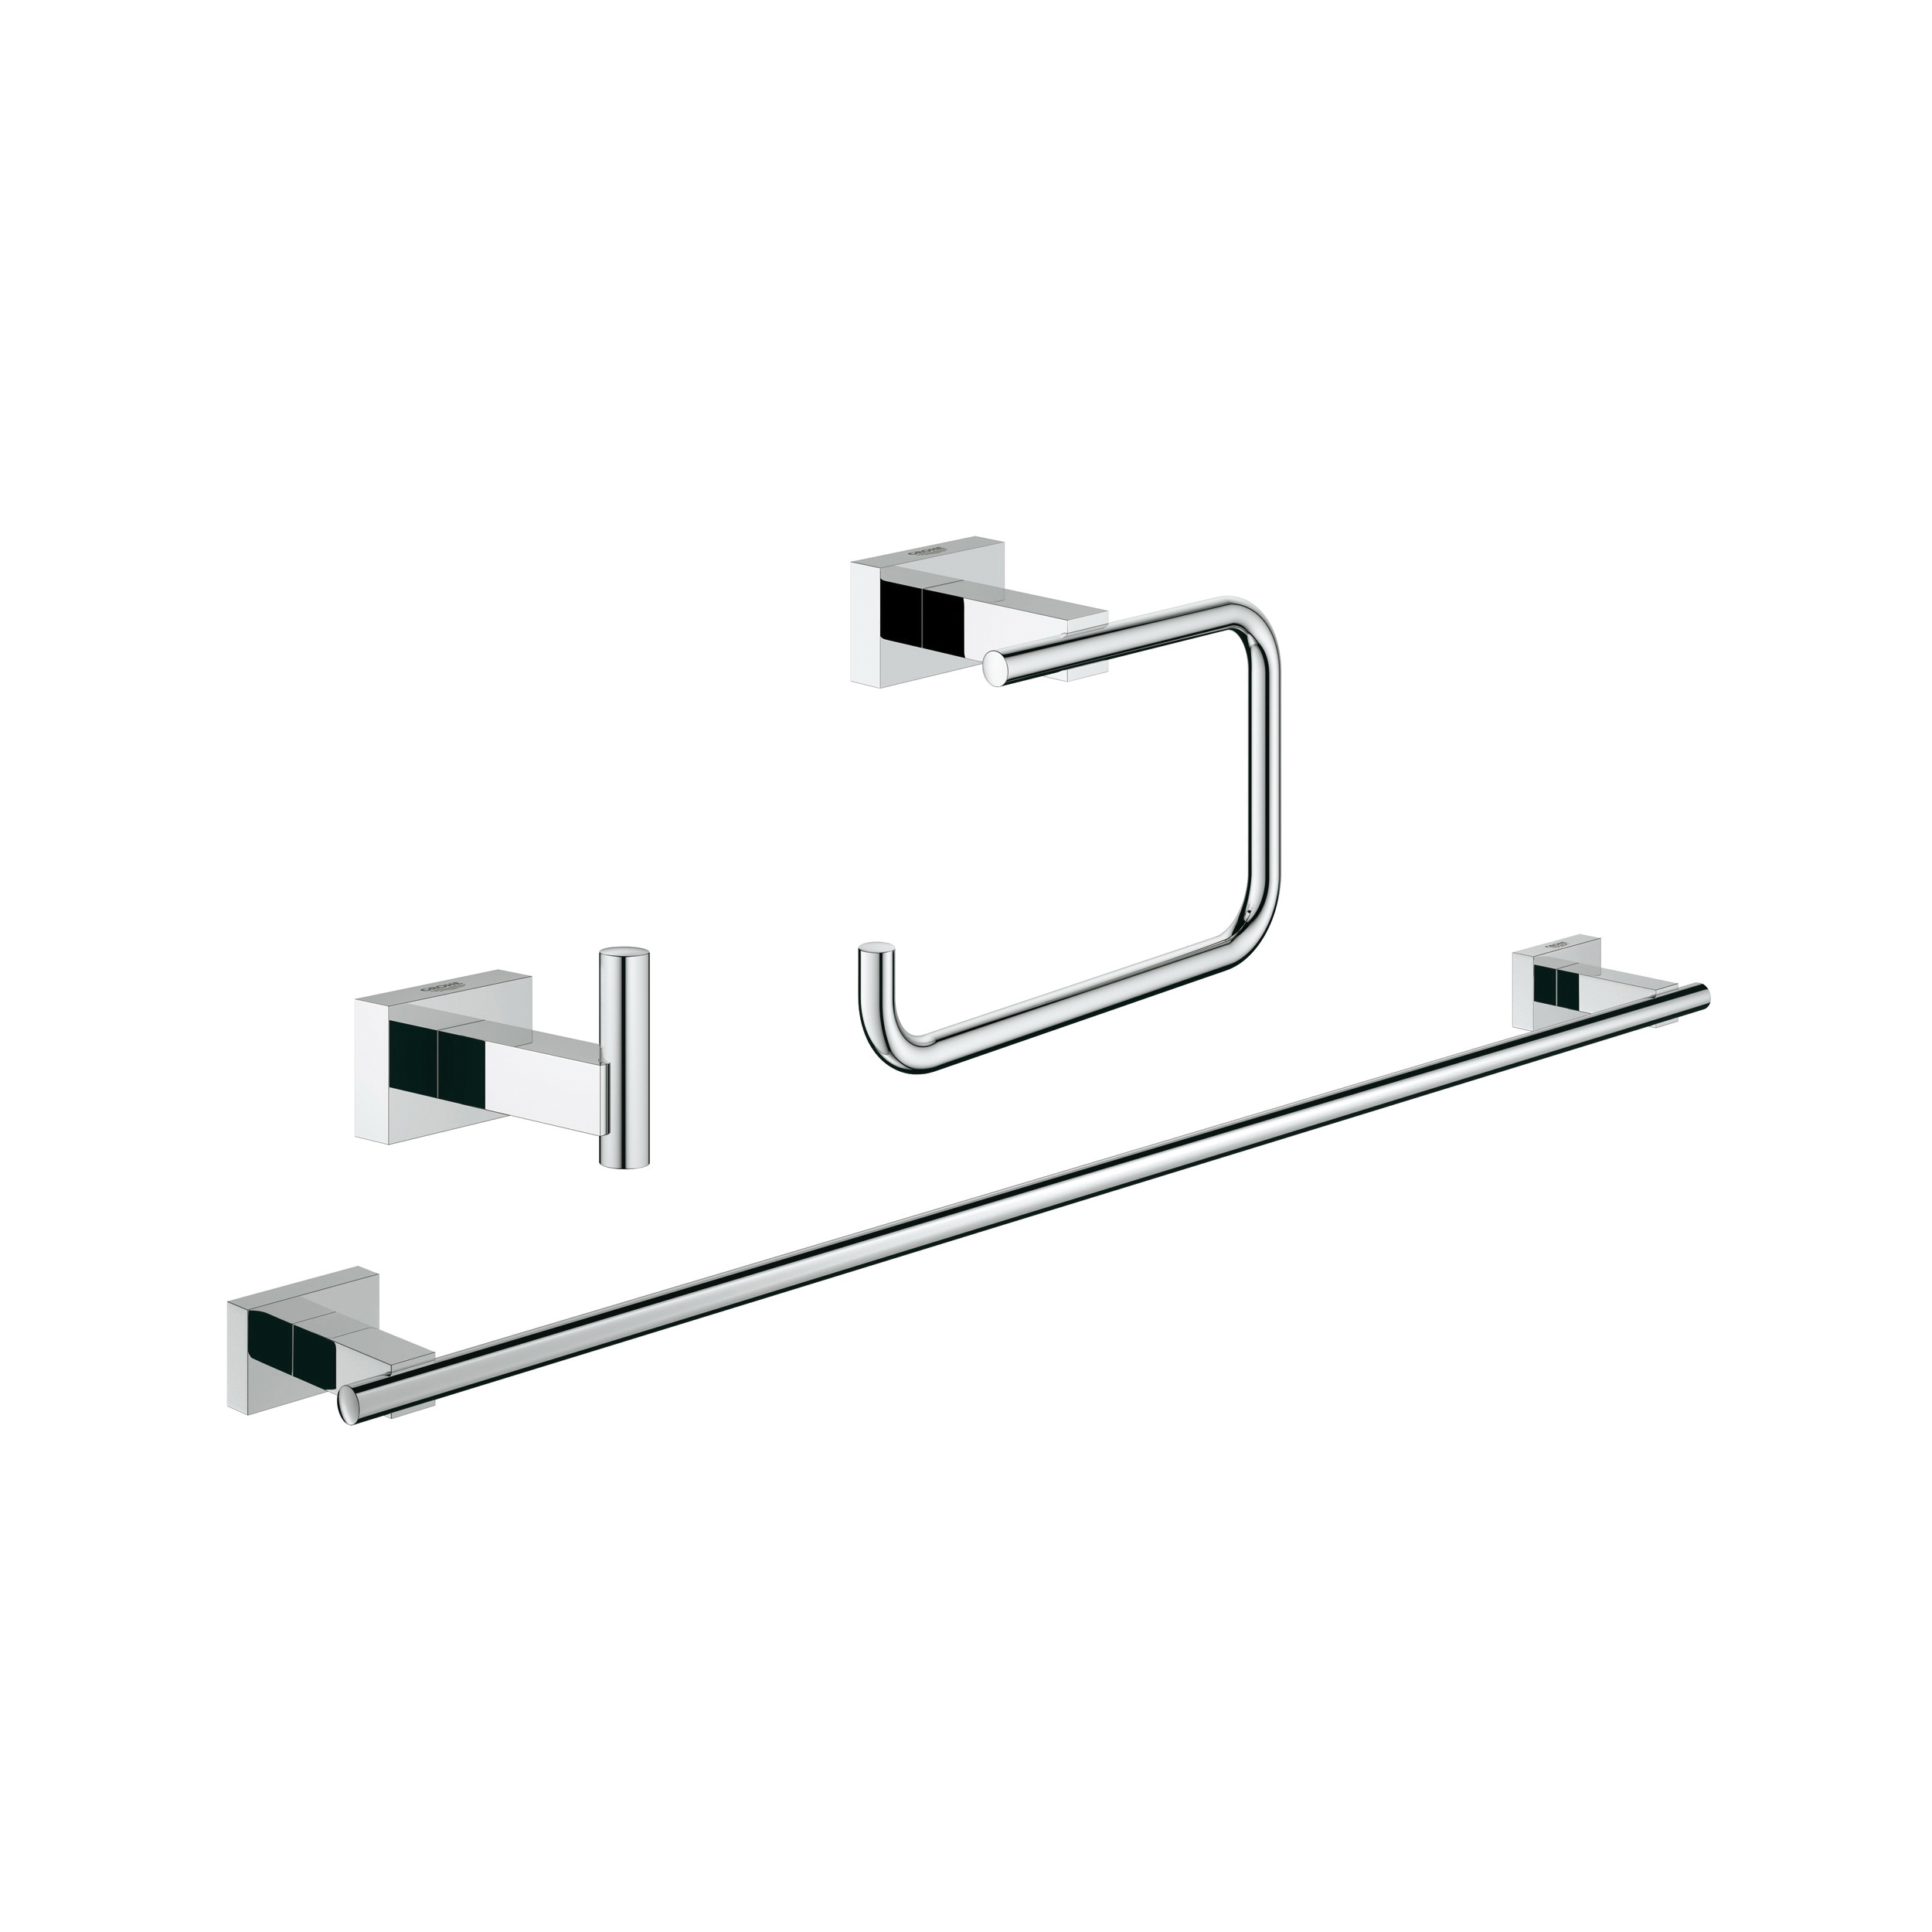 GROHE 40777001 Essentials Cube Guest Bathroom Accessories Set, 1 Bar, 1 Hook, Import